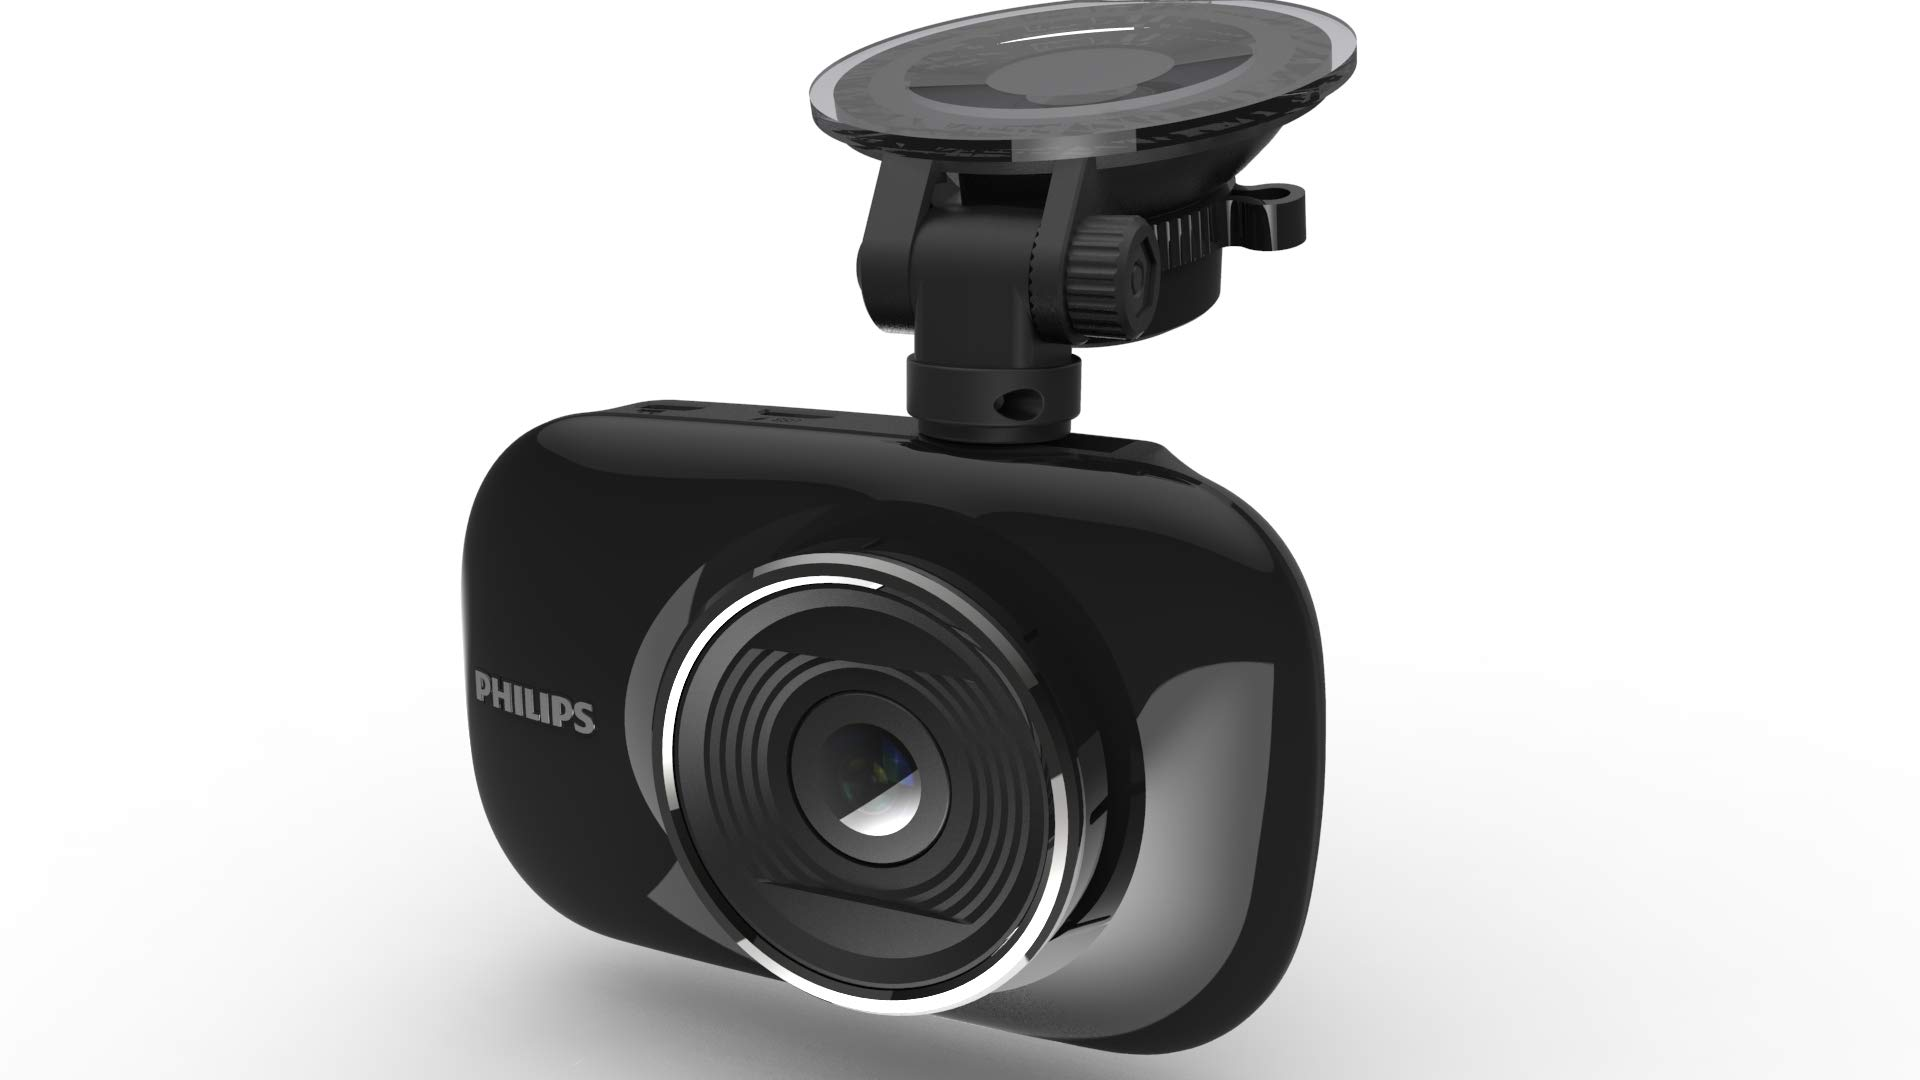 Philips-56750XM-GoSure-Full-HD-Autokamera-Dashcam-ADR820